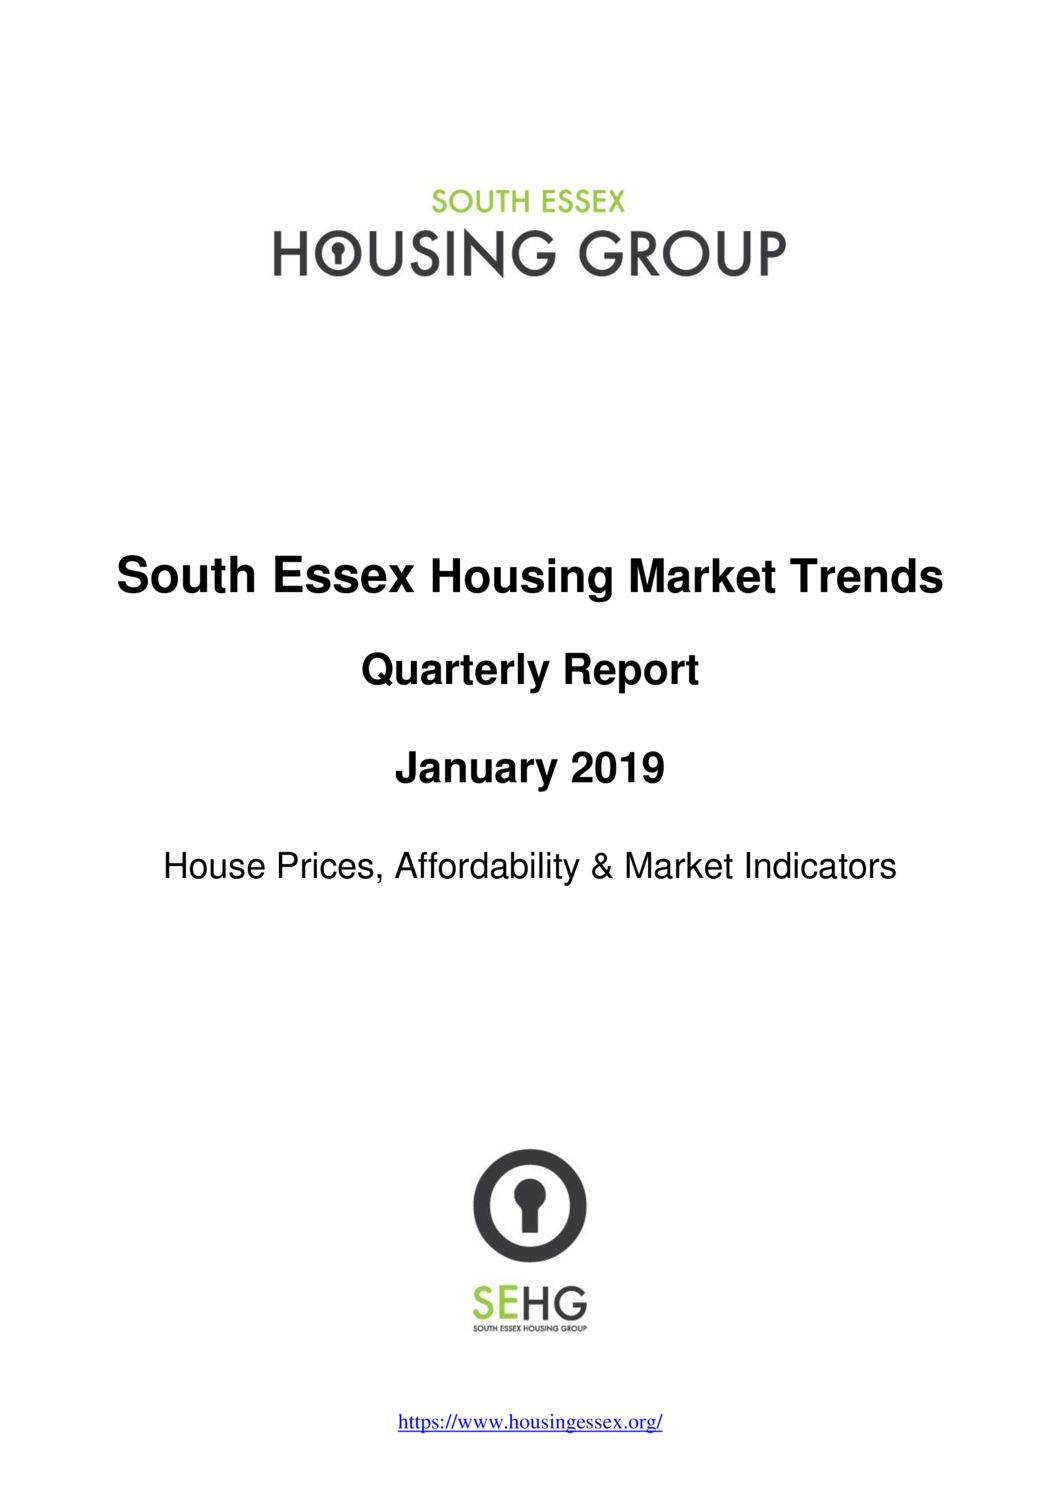 South Essex Housing Market Trends Report January 2019